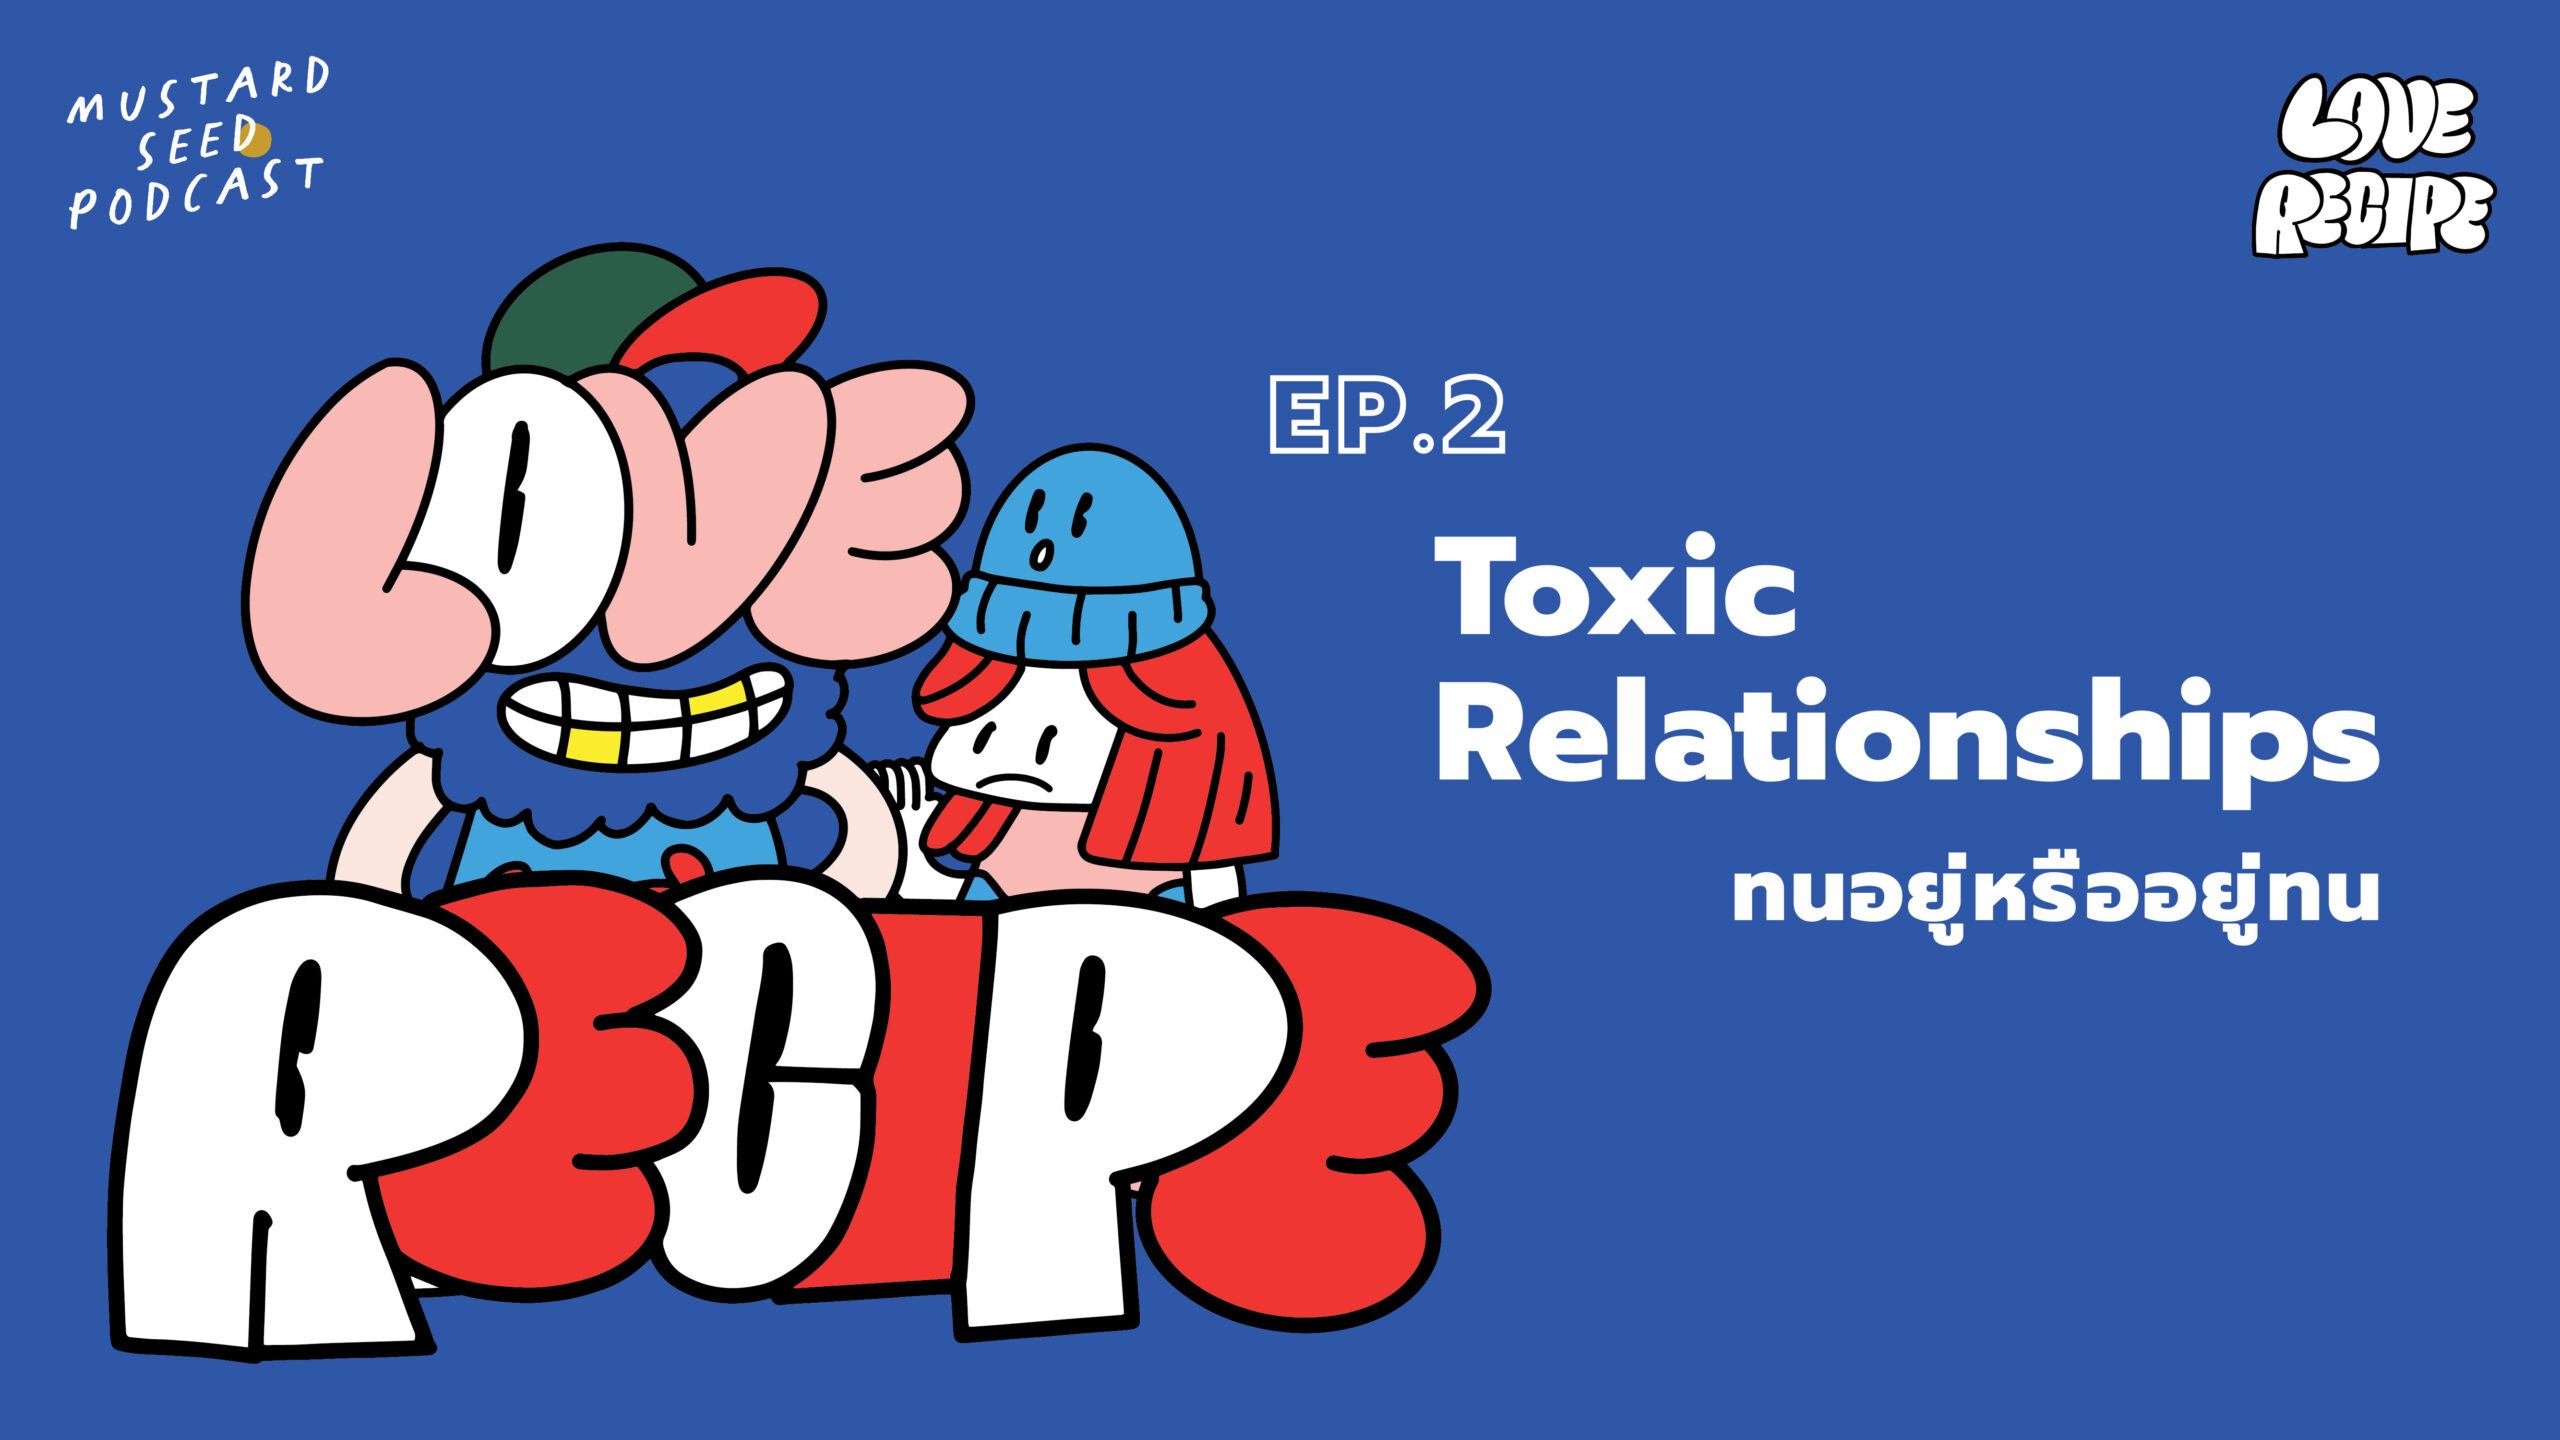 LOVE RECIPE PODCAST EP.2 Toxic Relationship